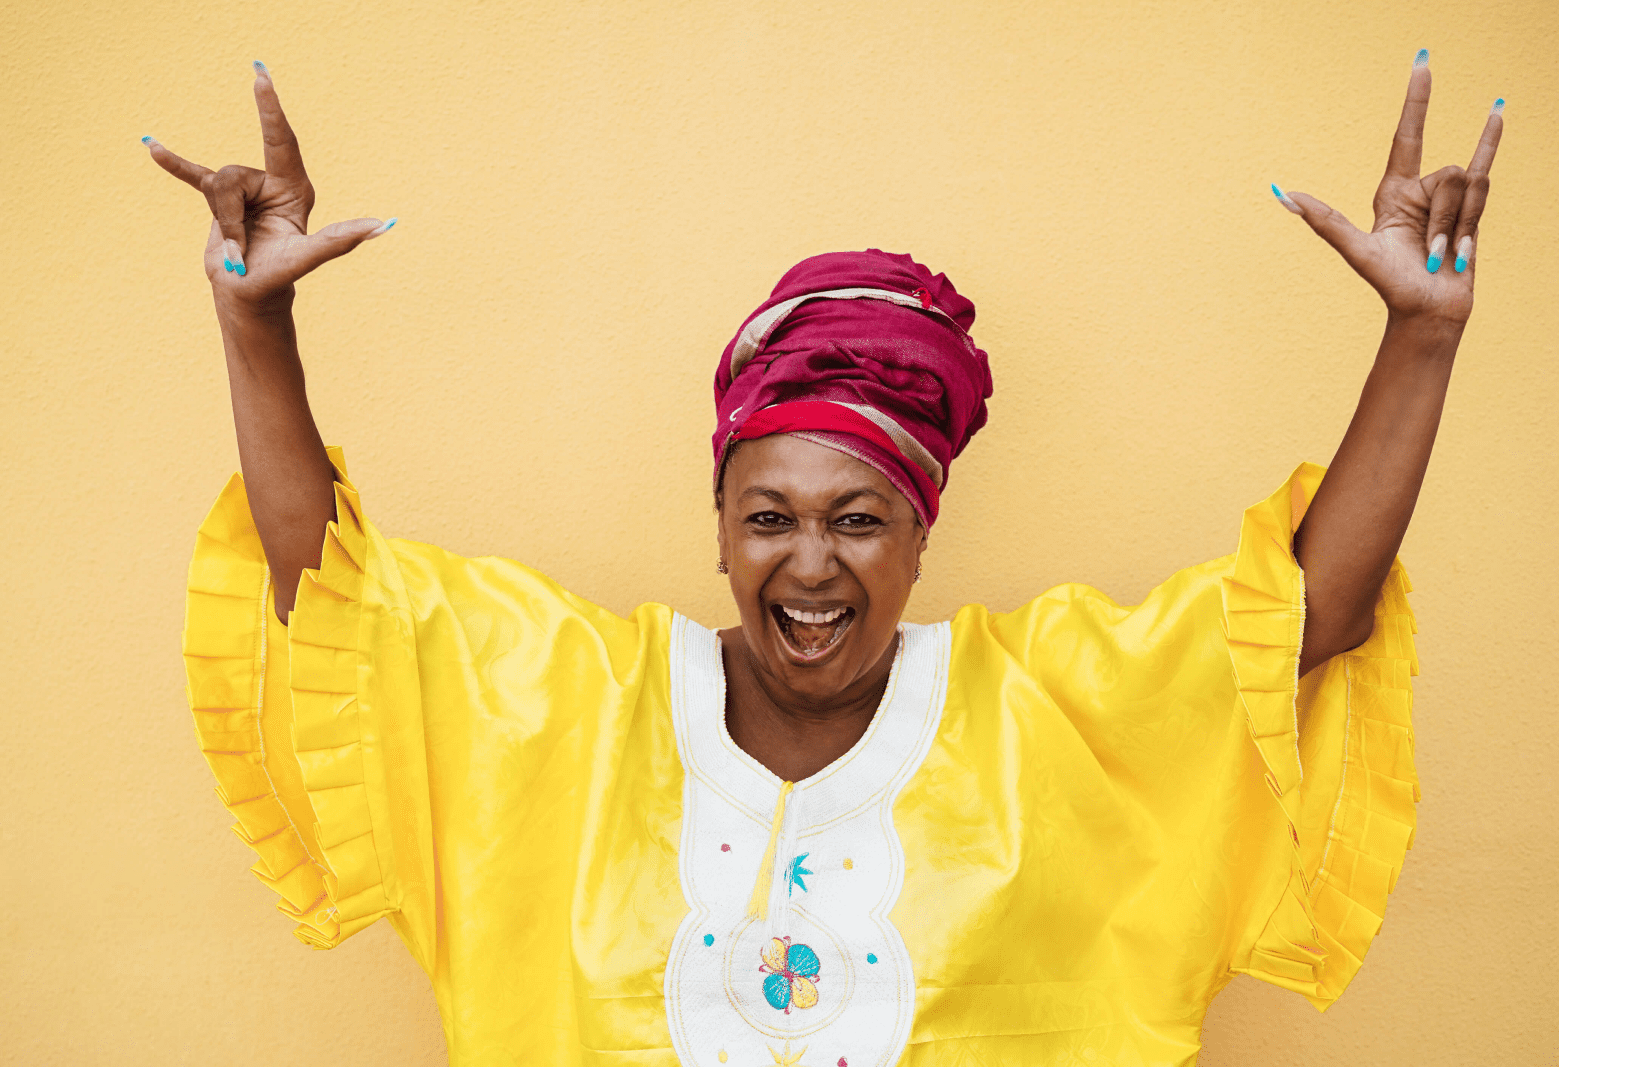 An image of a happy black woman in a yellow dress with her hands in the air